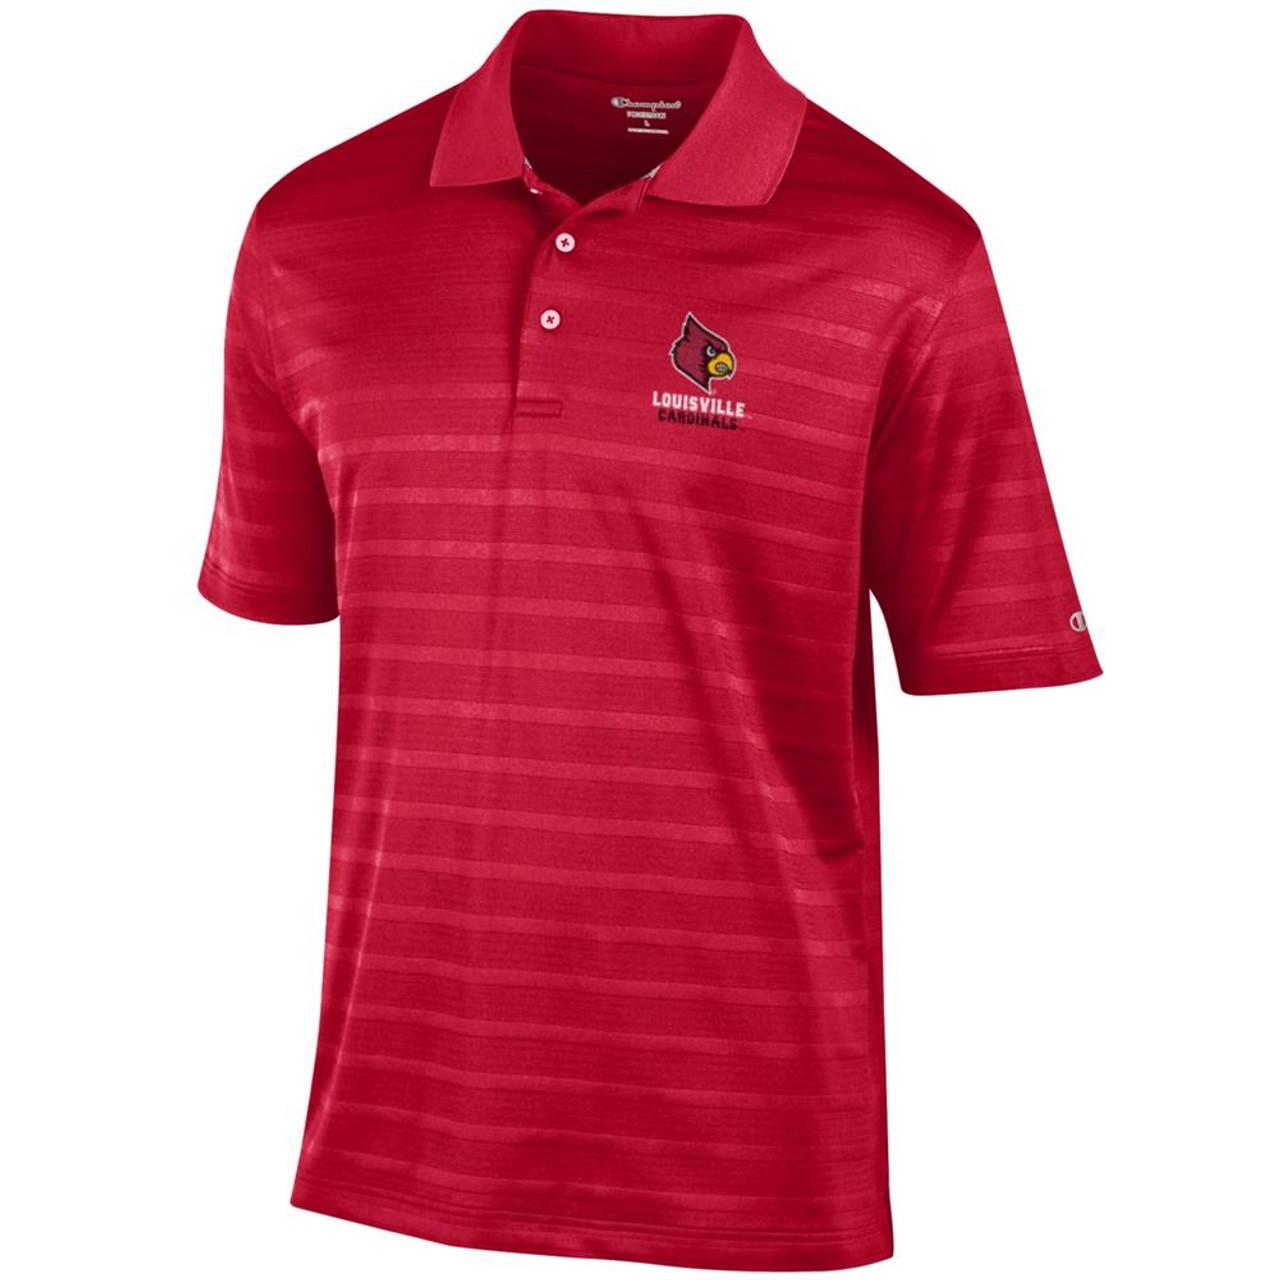 ed8a94d5a Louisville Cardinals Men's Polo Champion Textured Solid Polo